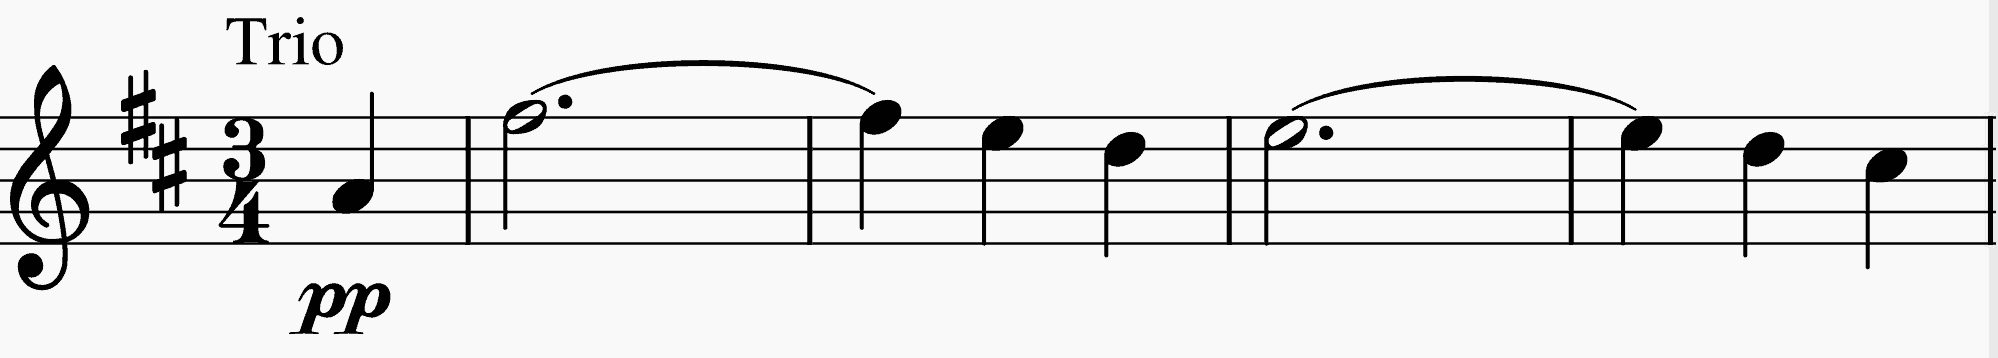 Trio's D-major theme